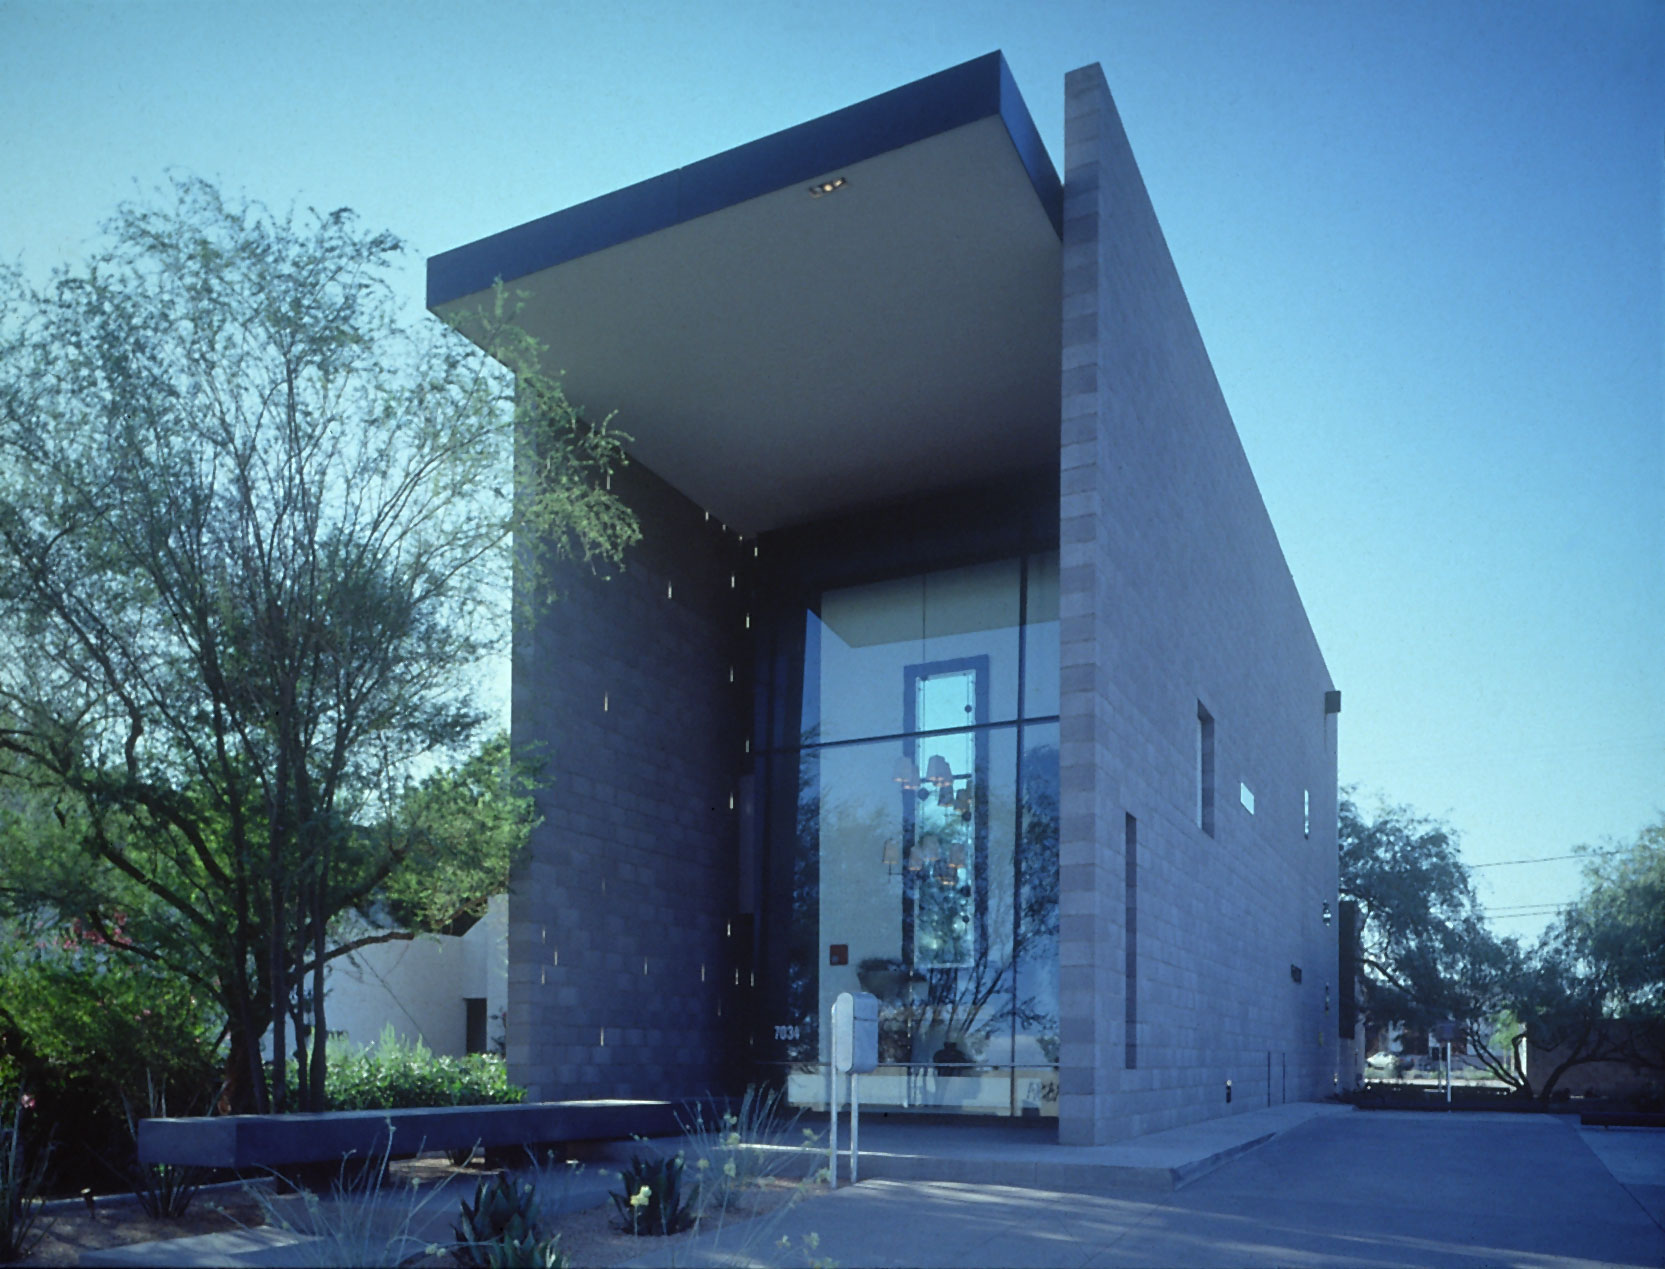 Copy of david michael miller associates - scottsdale, az